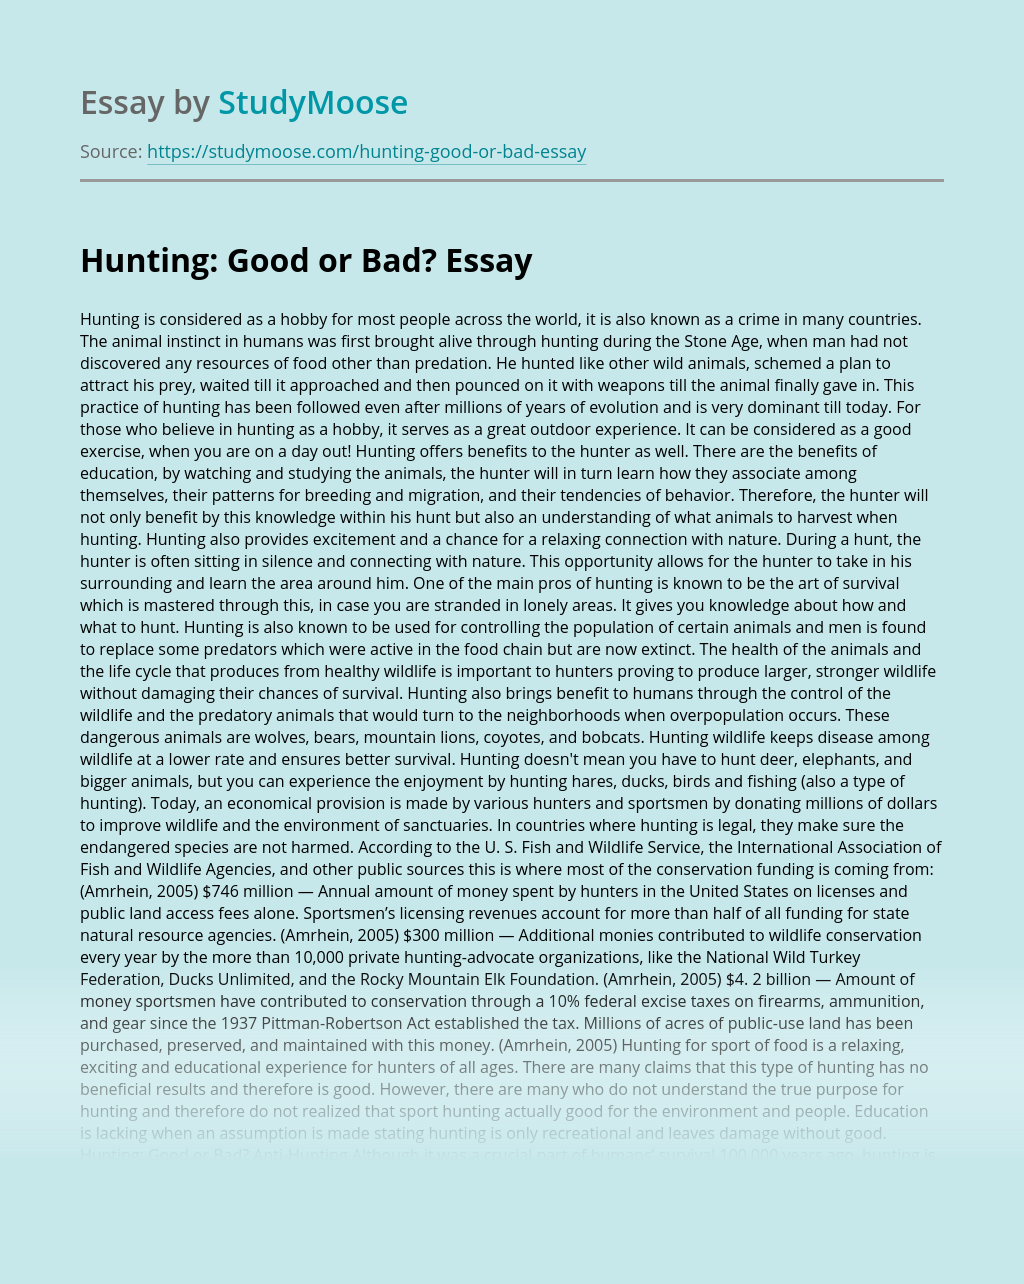 Hunting: Good or Bad?